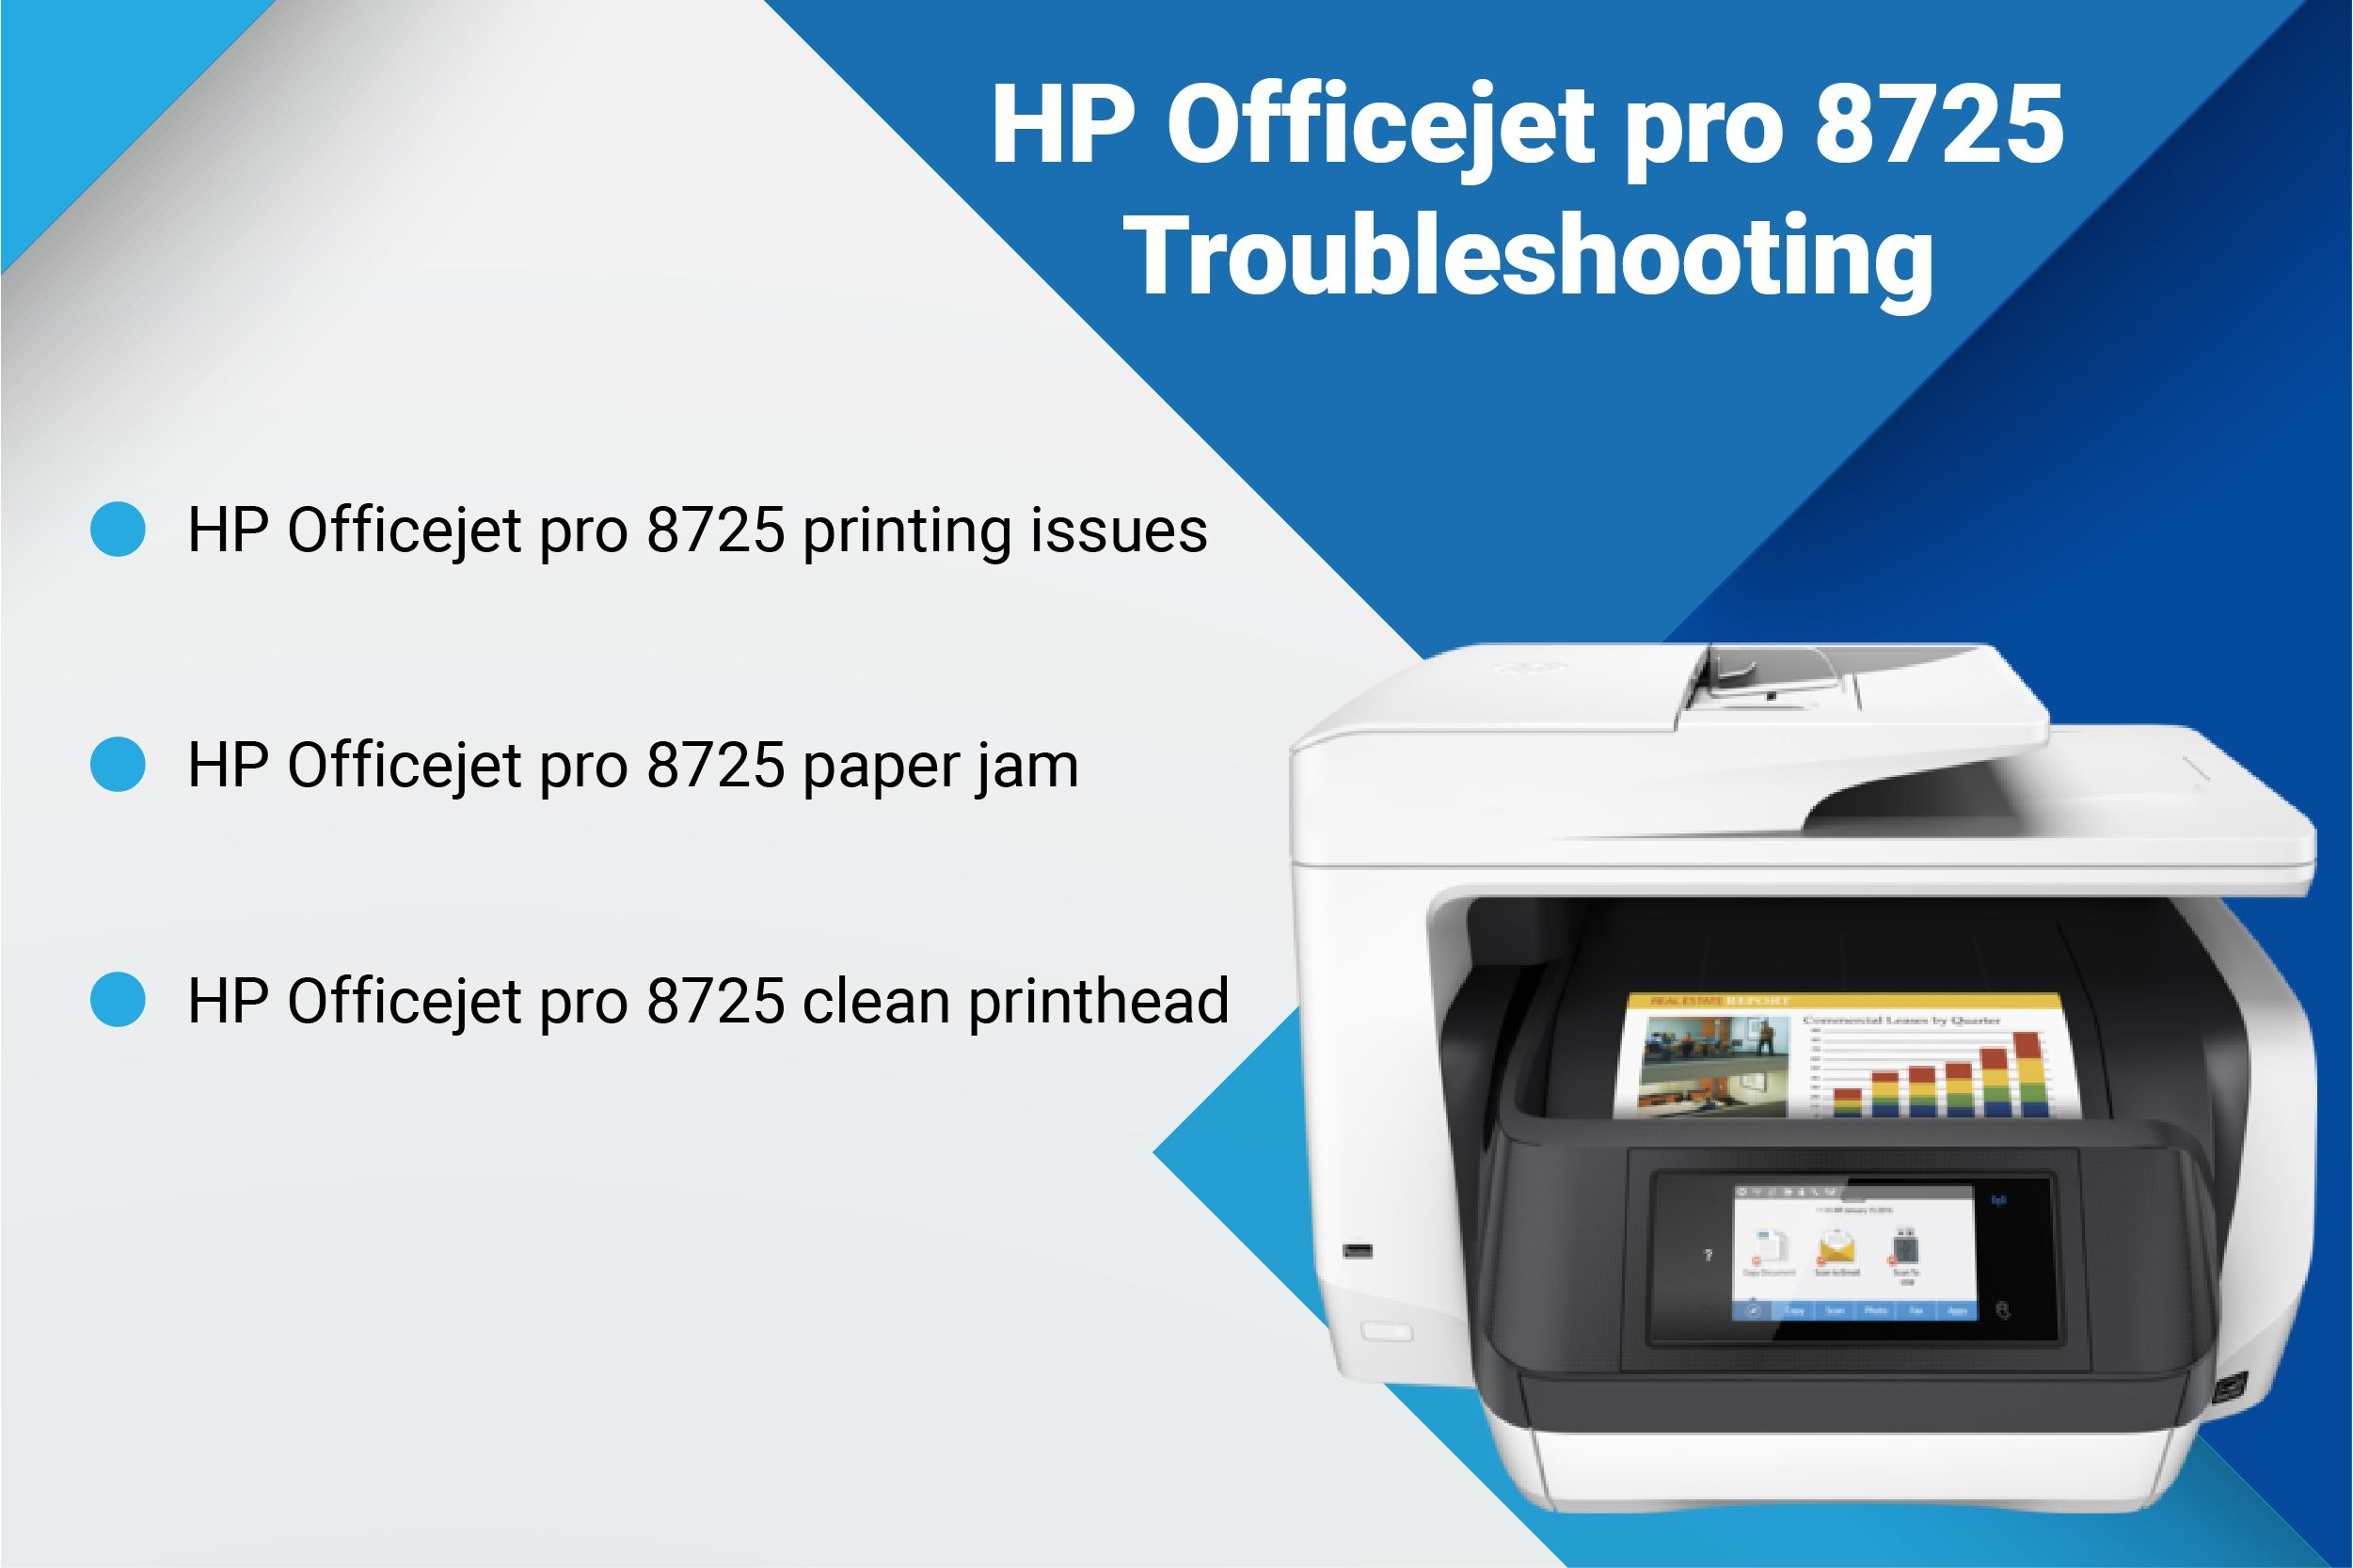 Facing paper jam issues in your HP Officejet pro 8725